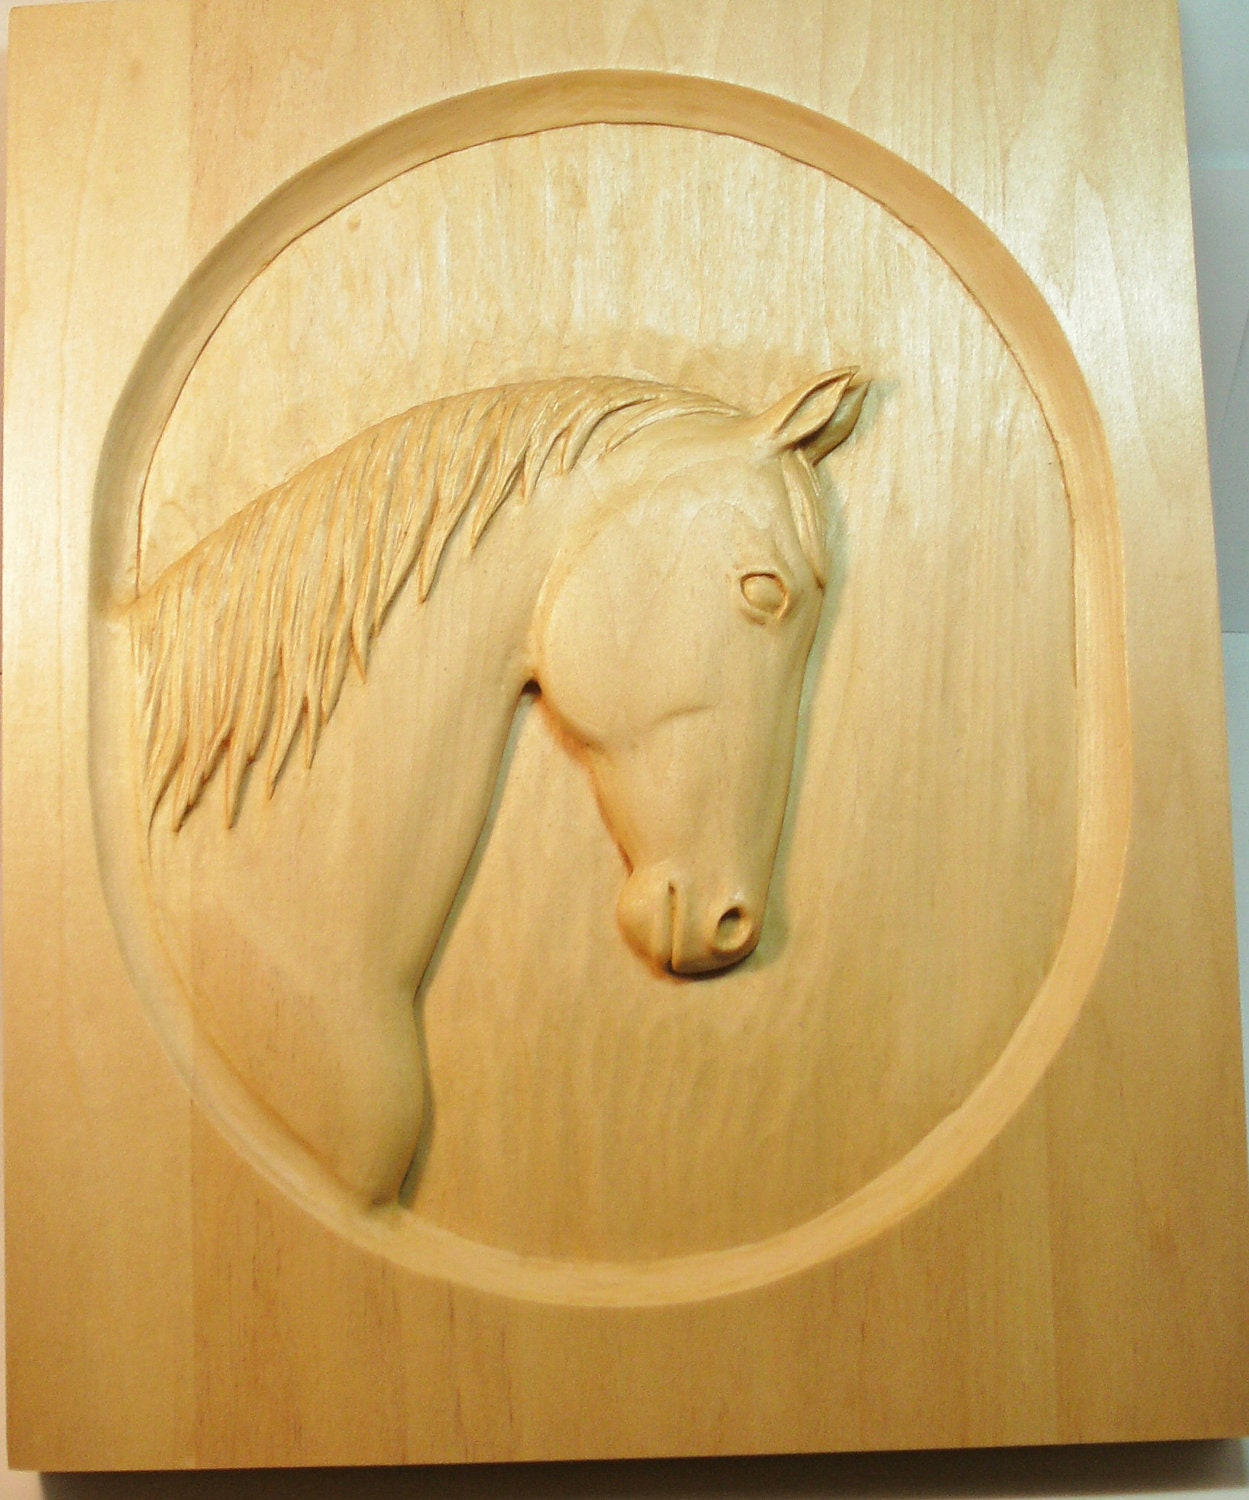 Items similar to horse portrait relief carving on etsy